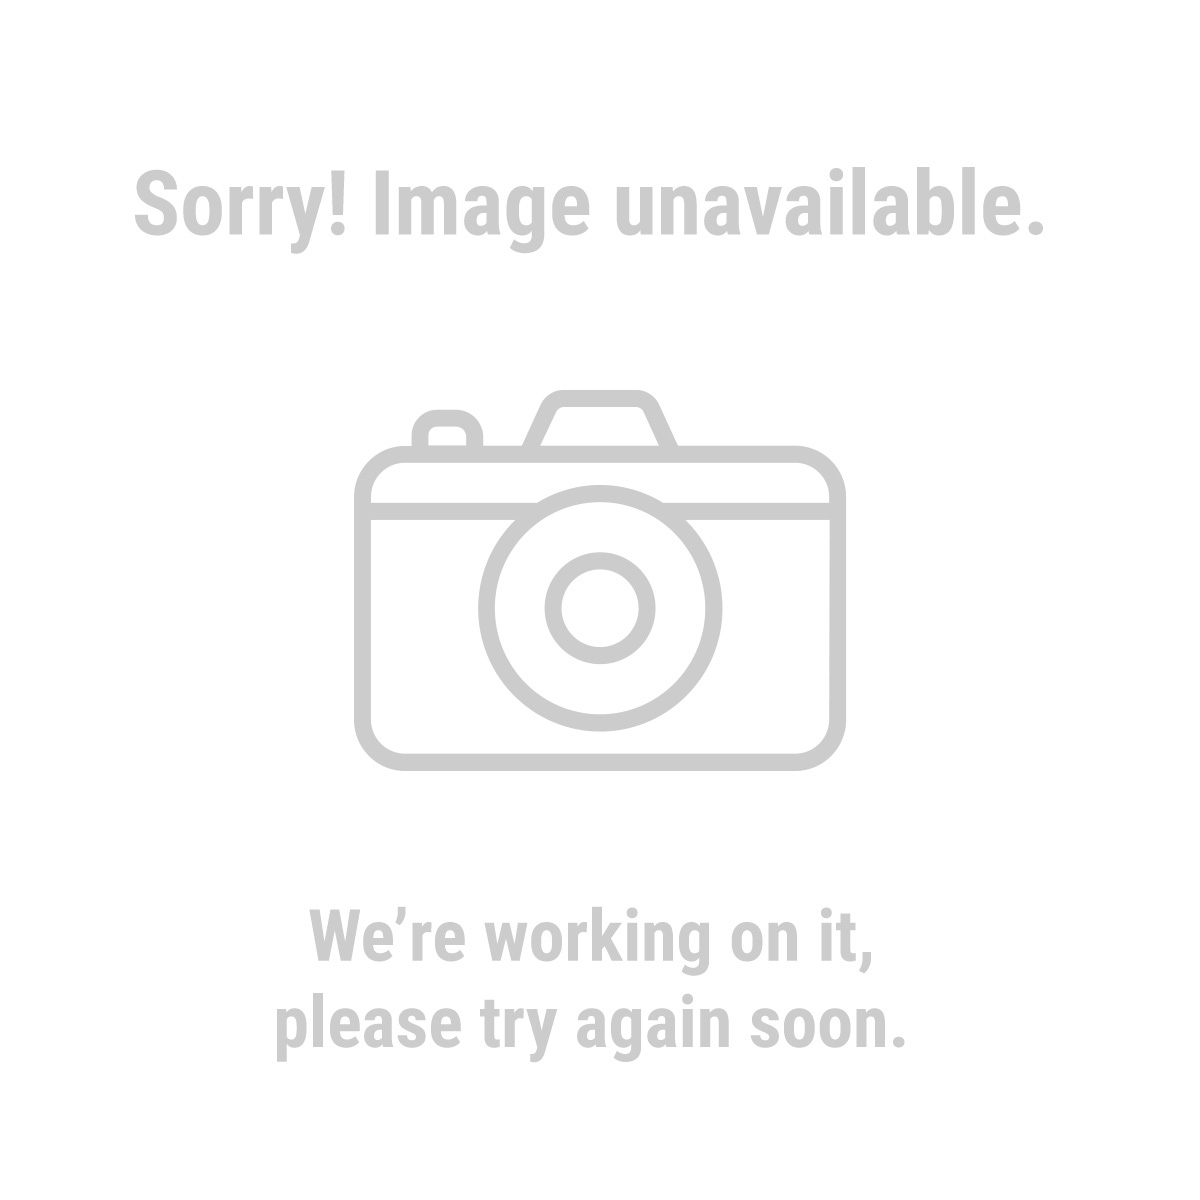 Harbor Freight Solar panel mods? - Endless Sphere